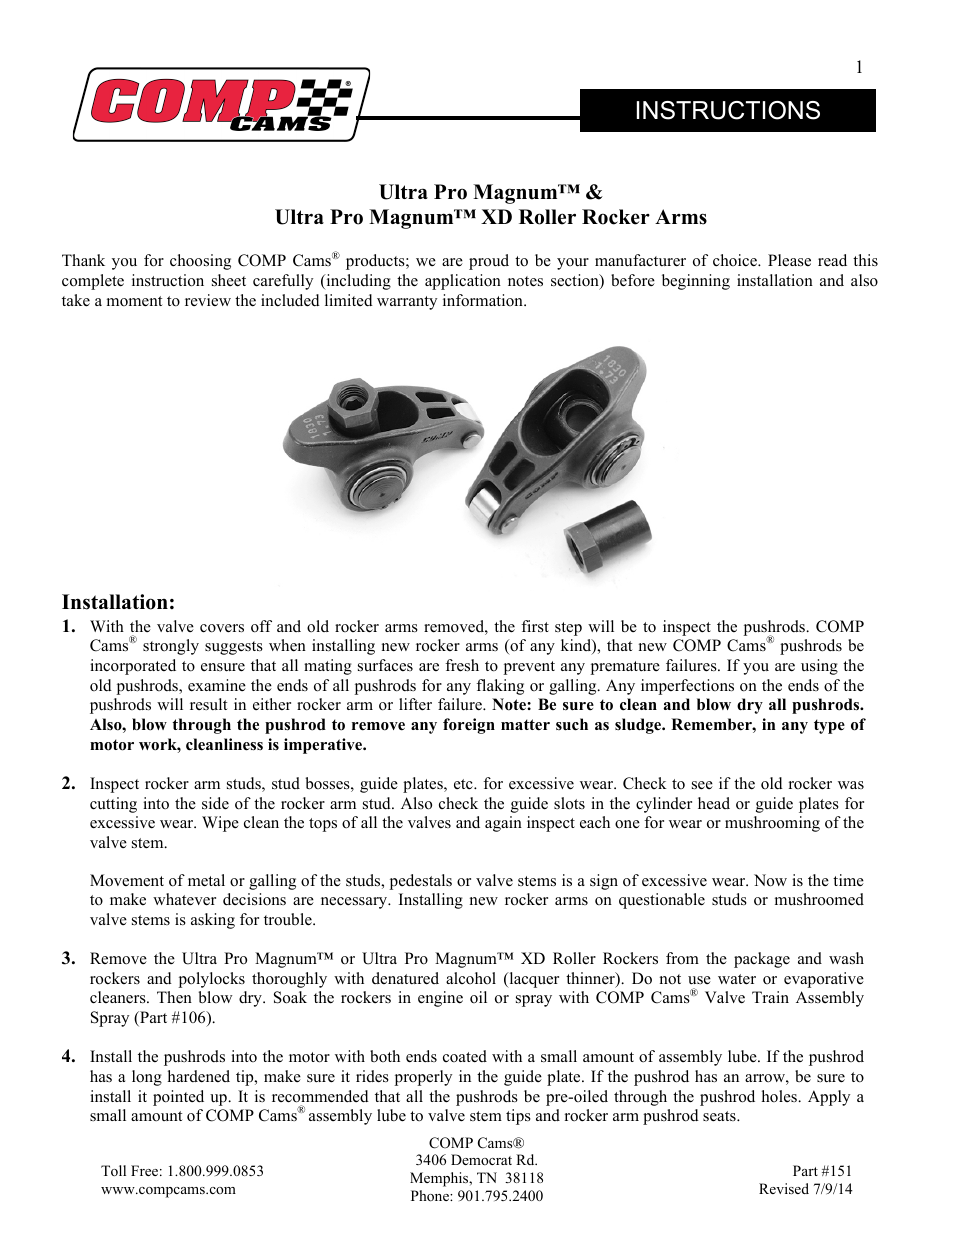 Comp Cams Ultra Pro Magnum Xd Roller Rocker Arms User Manual 5 Pages Also For Ultra Pro Magnum